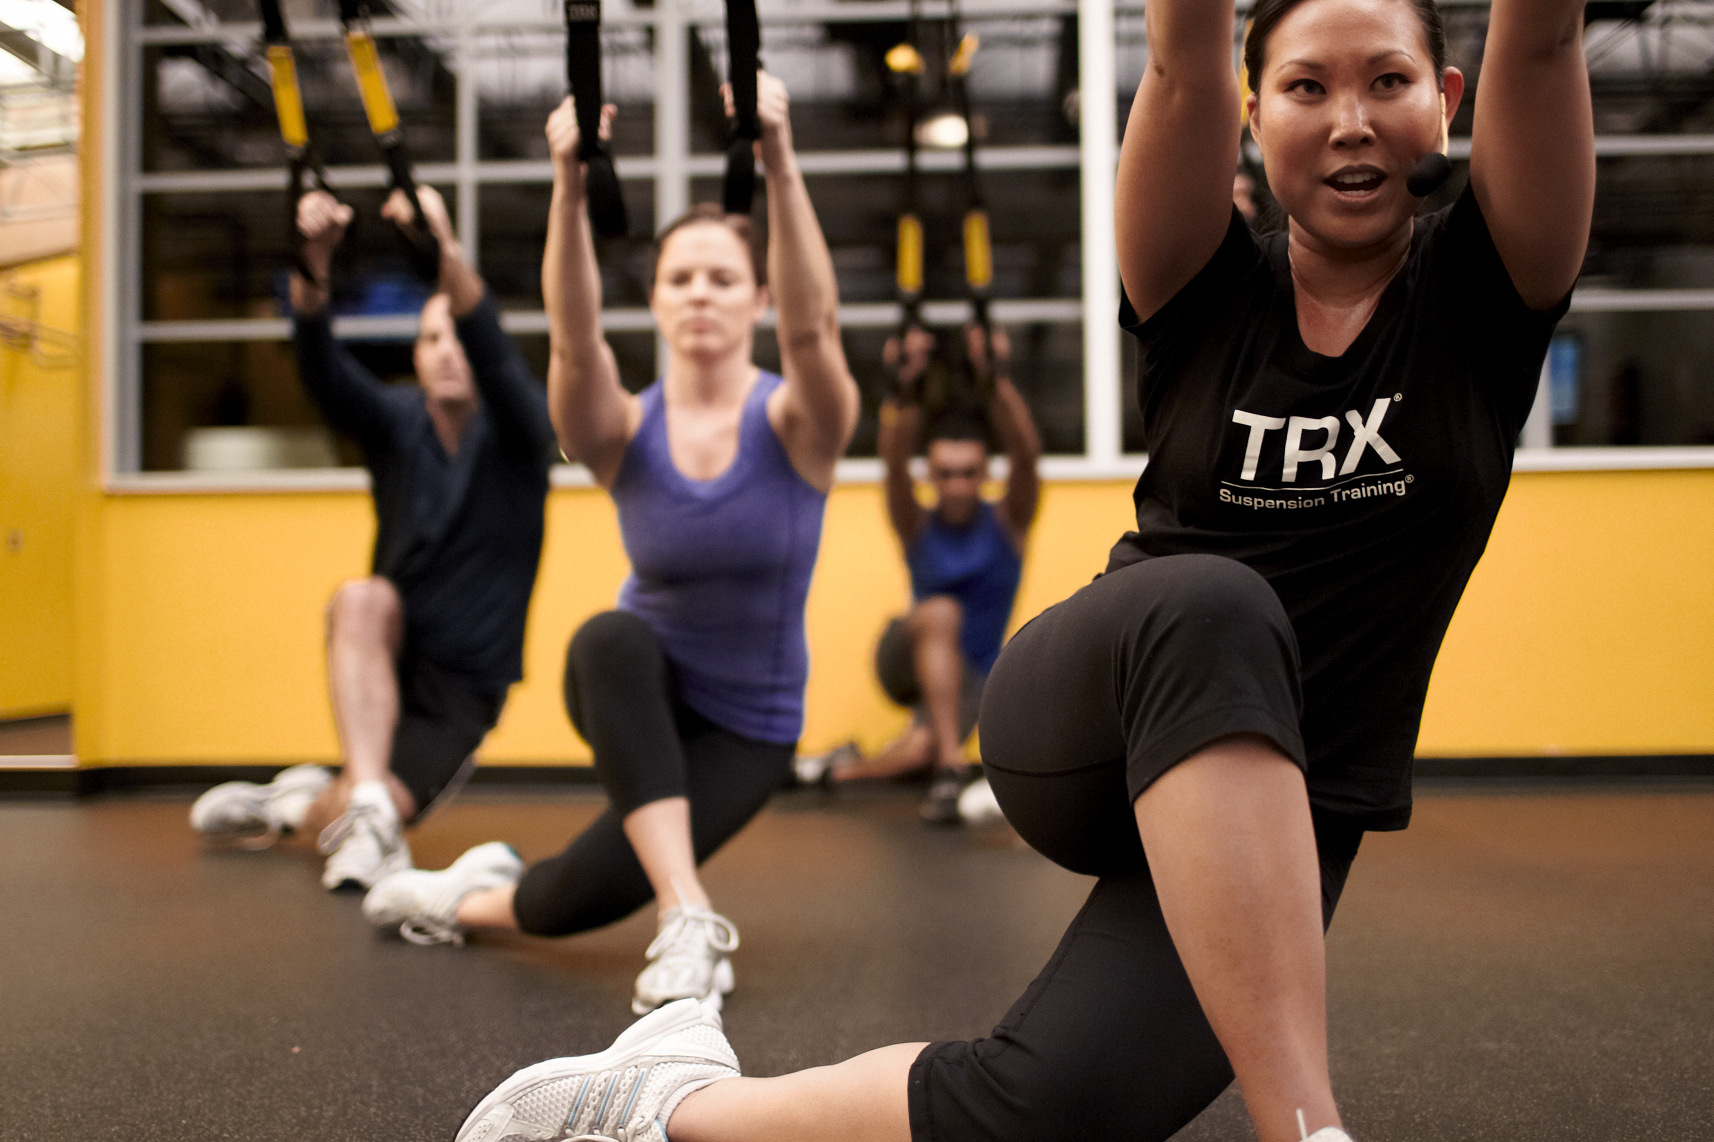 TRX group class doing crossing balance lunge